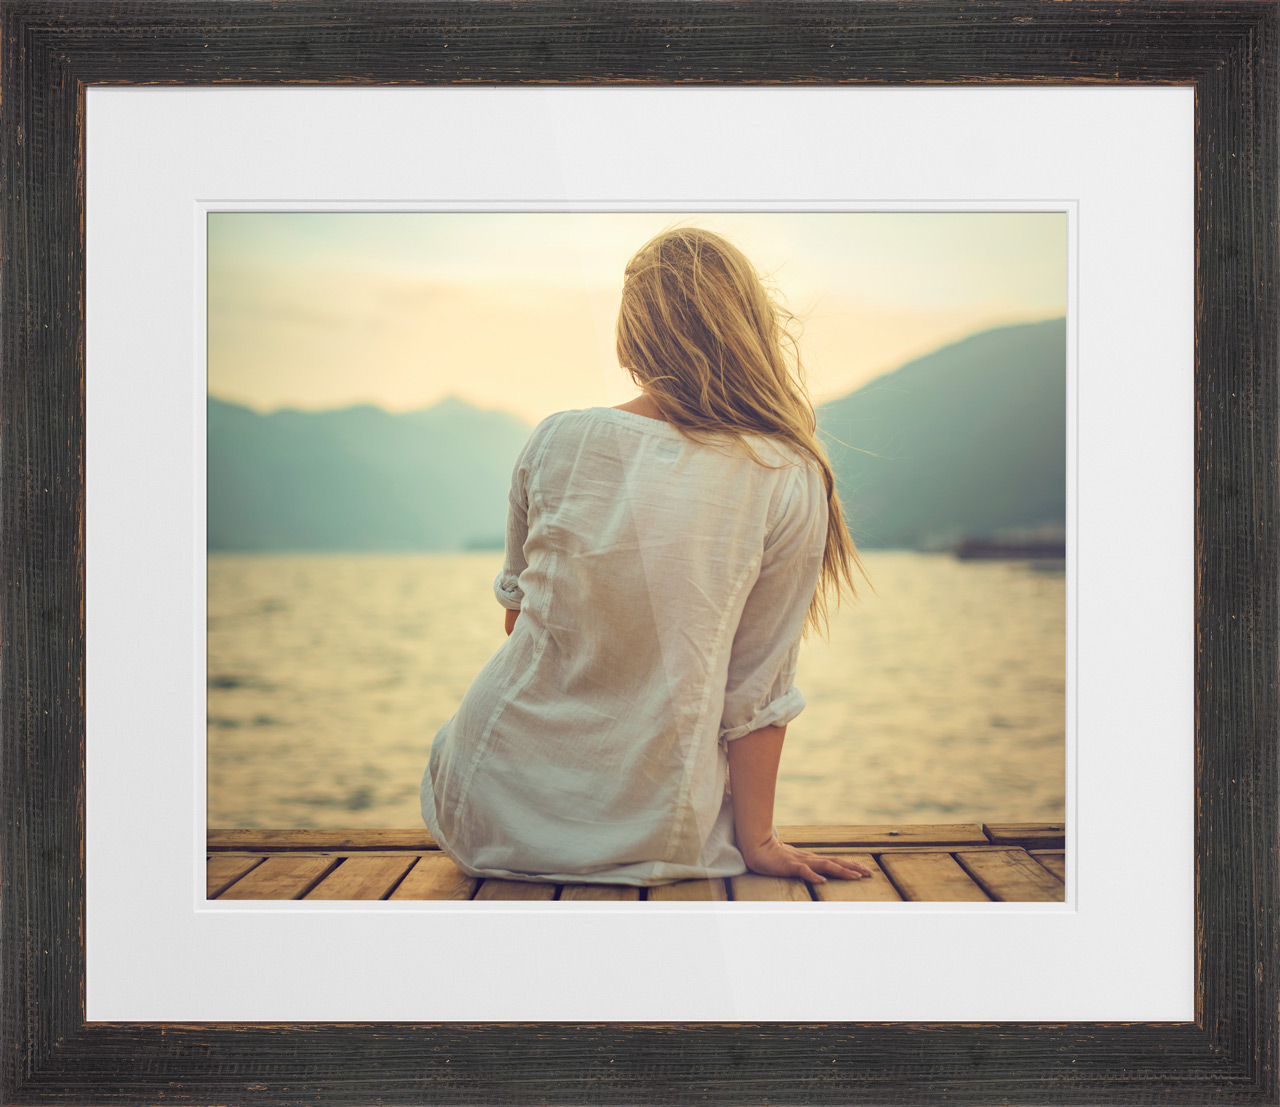 2016-Summer-Launch-Girl-Sitting-On-A-Dock-Watching-At-A-Lake